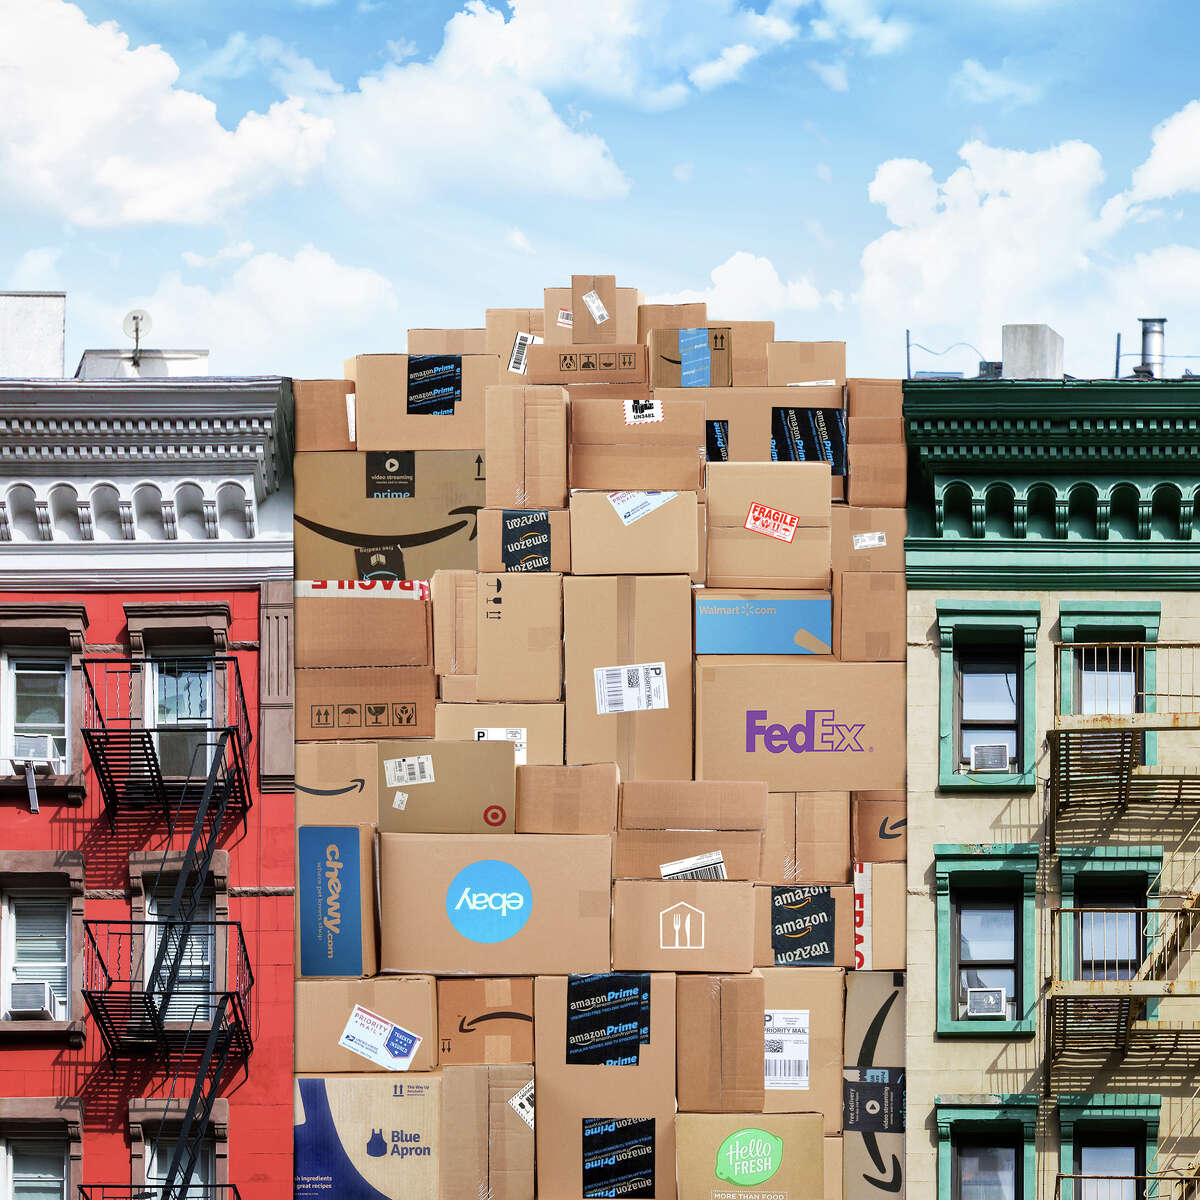 Package deliveries are overtaking New York City and the way many residential buildings have responded to the influx is to go high tech. (Rob Dobi/The New York Times) -- NO SALES; FOR EDITORIAL USE ONLY WITH NY PACKAGE DELIVERY BY RONNIE KOENIG FOR NOV. 7, 2019. ALL OTHER USE PROHIBITED. --